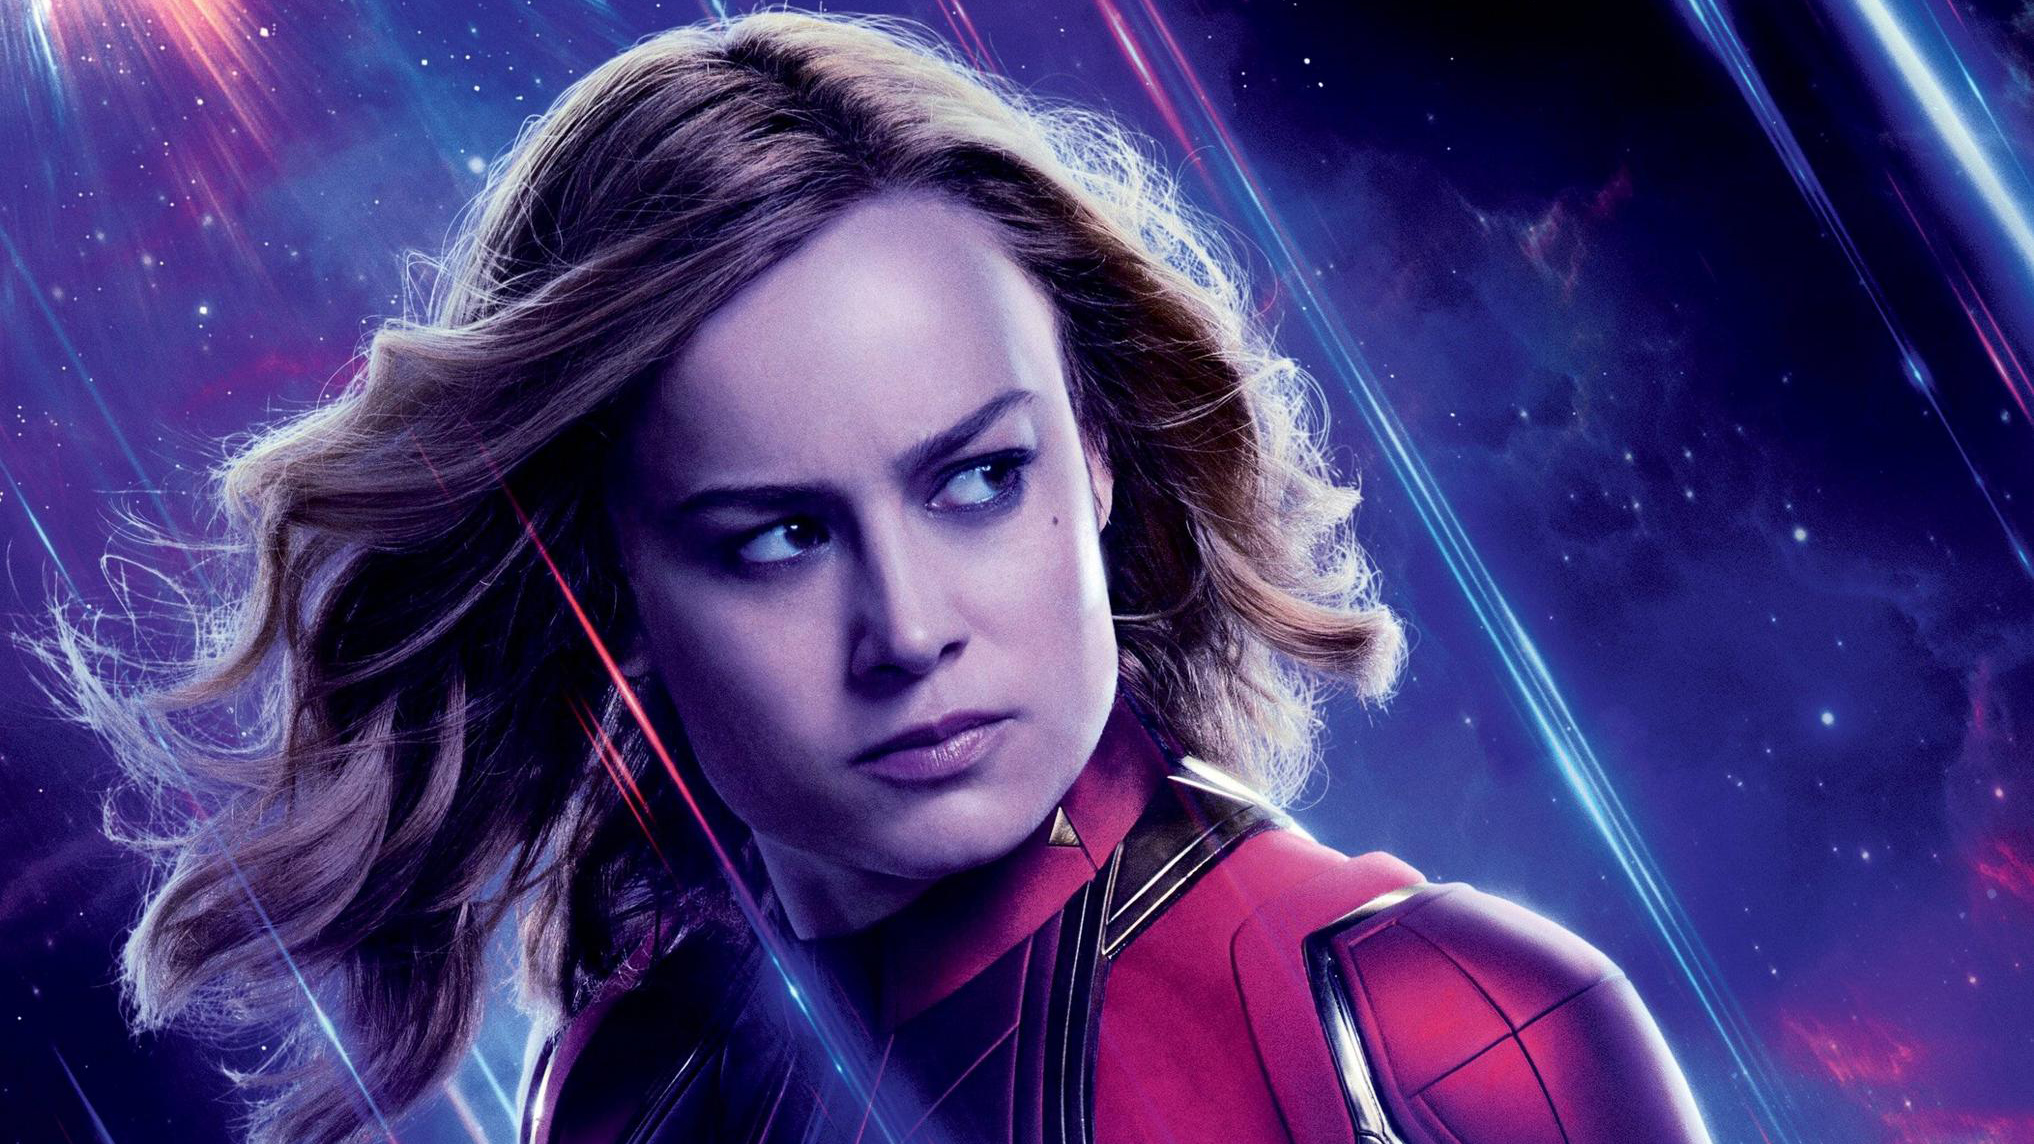 Captain Marvel In Avengers Endgame Hd Movies 4k Wallpapers Images